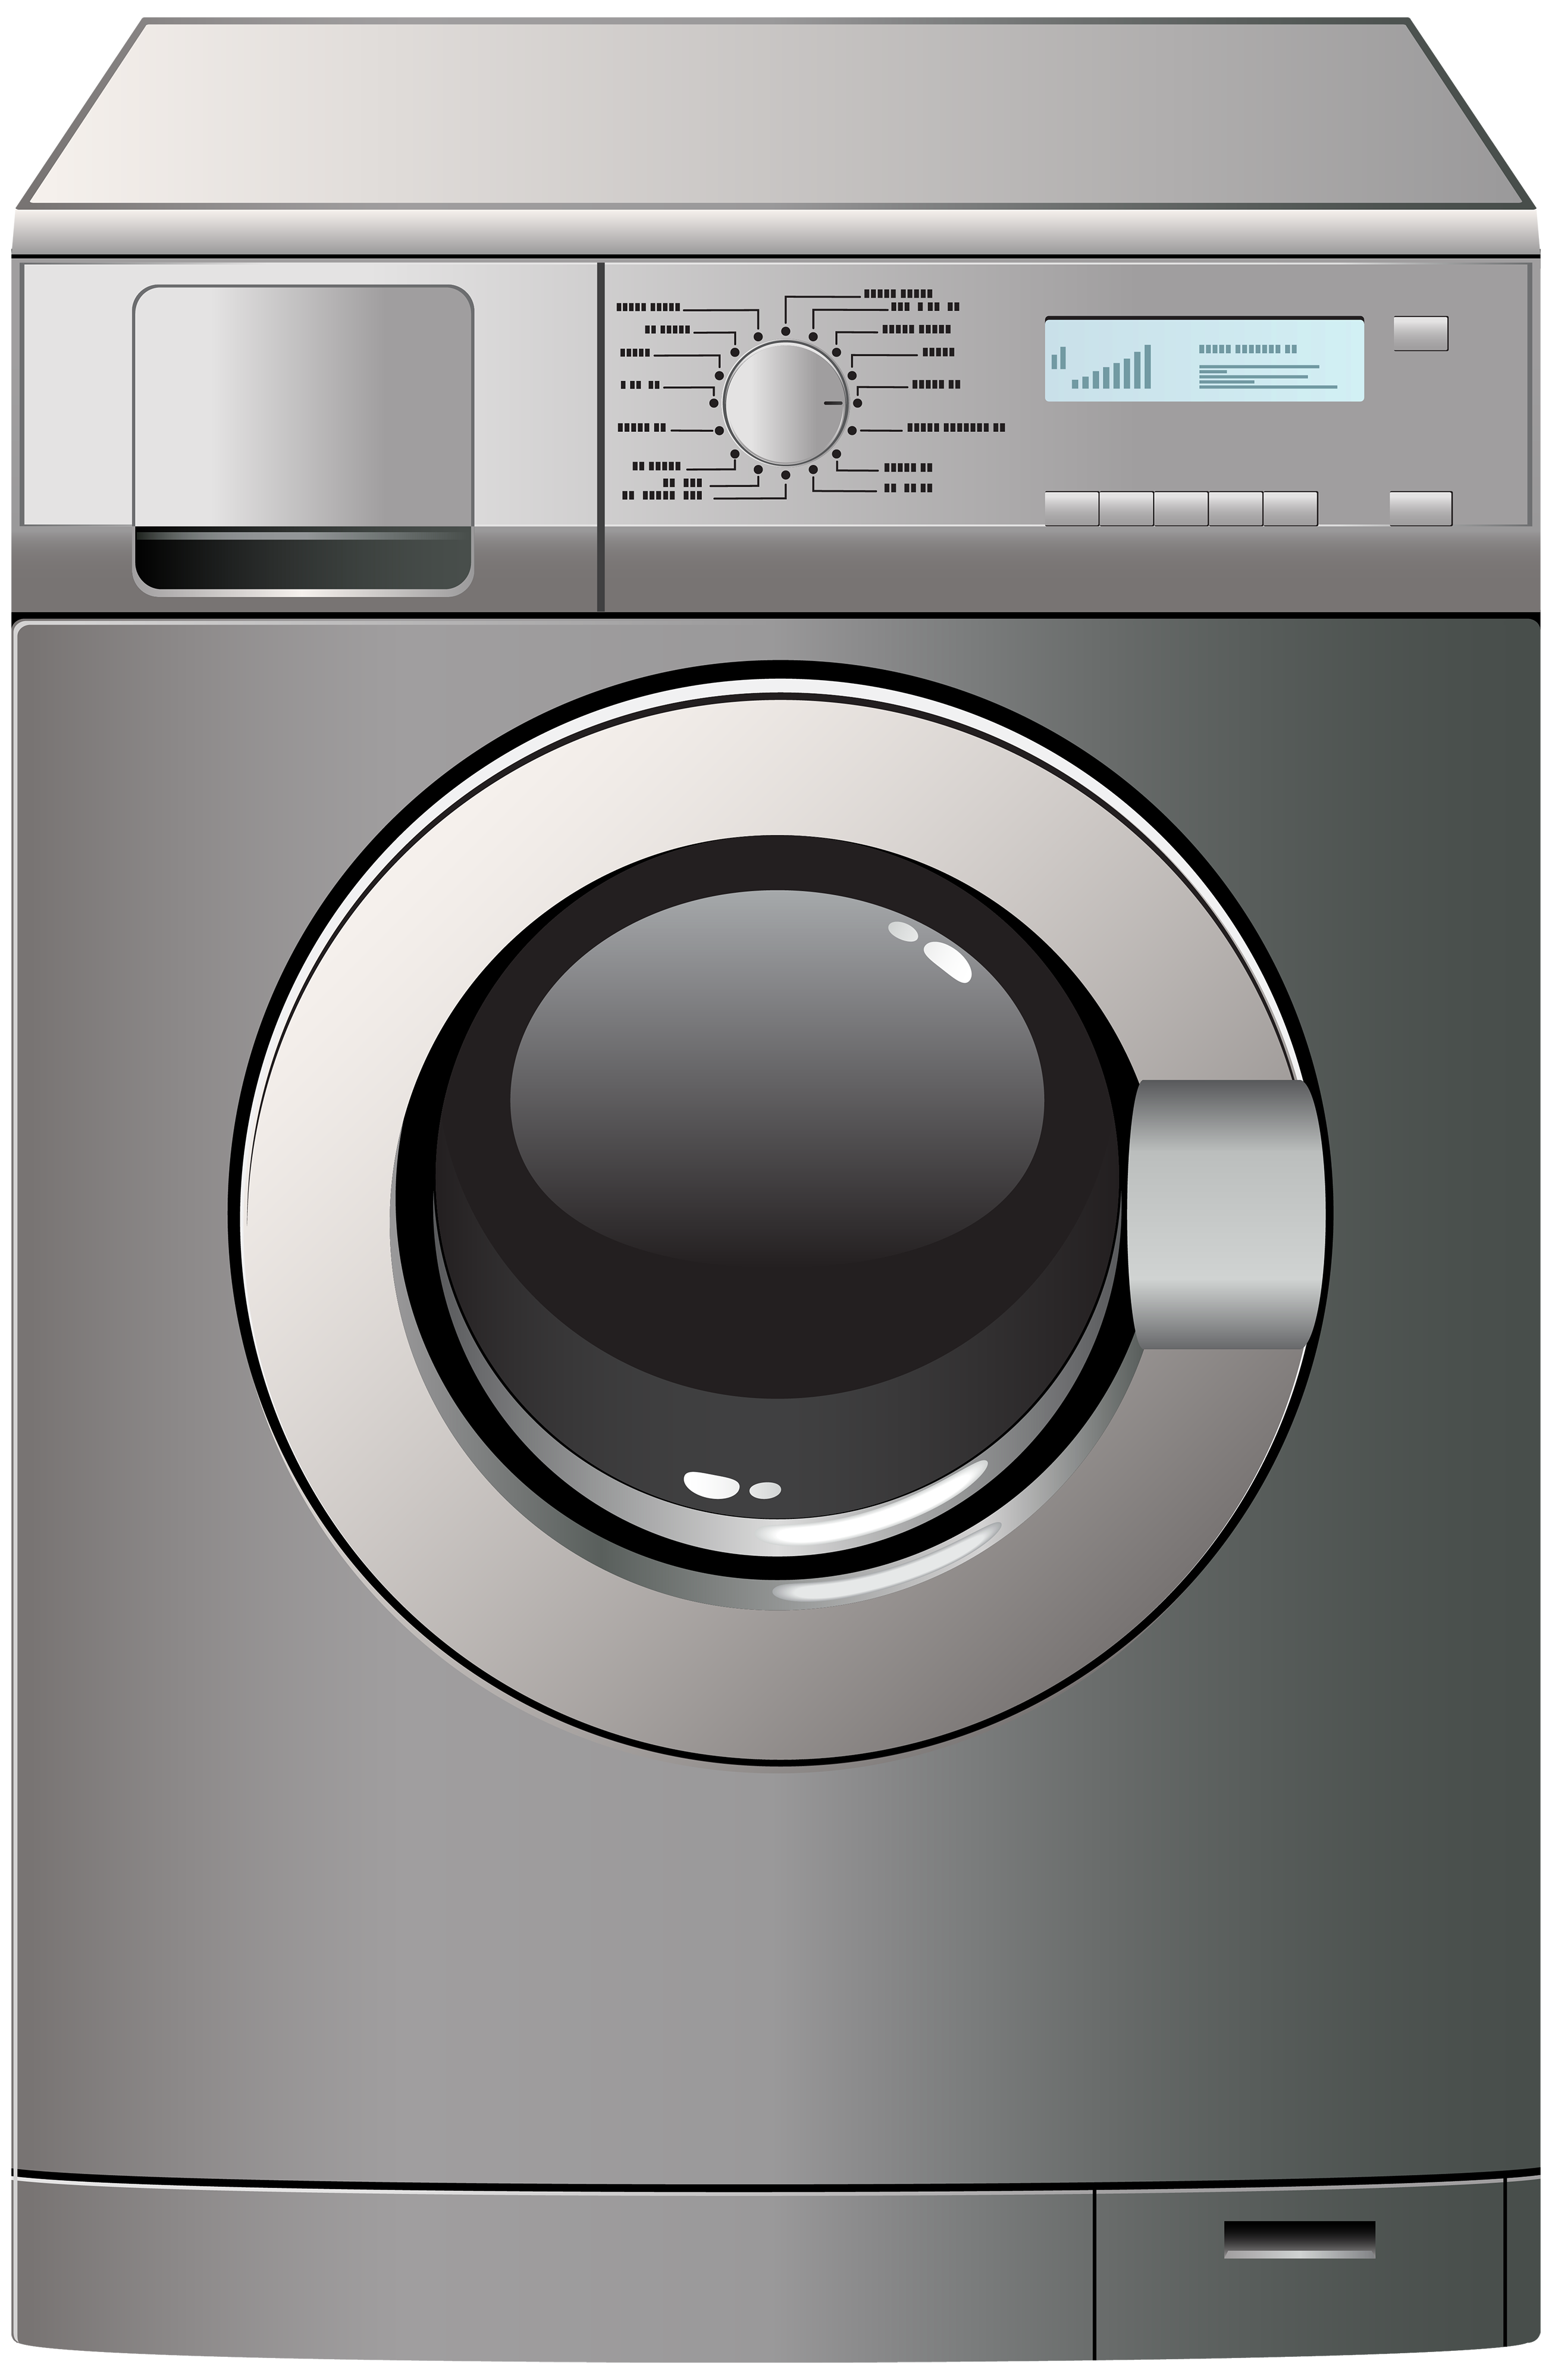 Dryer clipart washing machine. Png best web